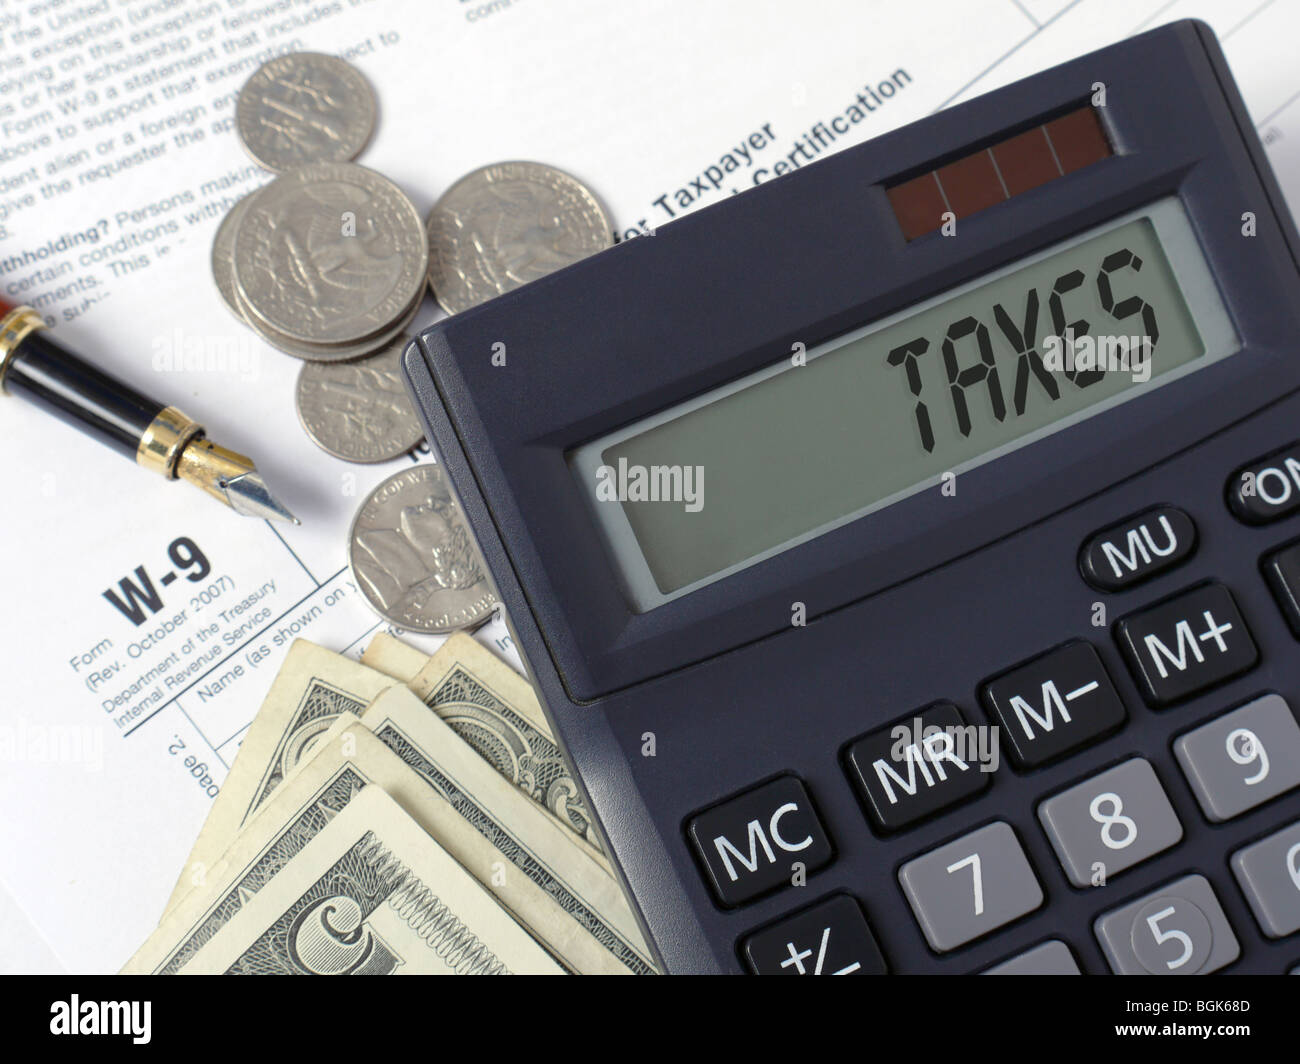 Calculator with lcd displaying Taxes word placed on W-9 income tax forms with pen, and american dollars - Stock Image